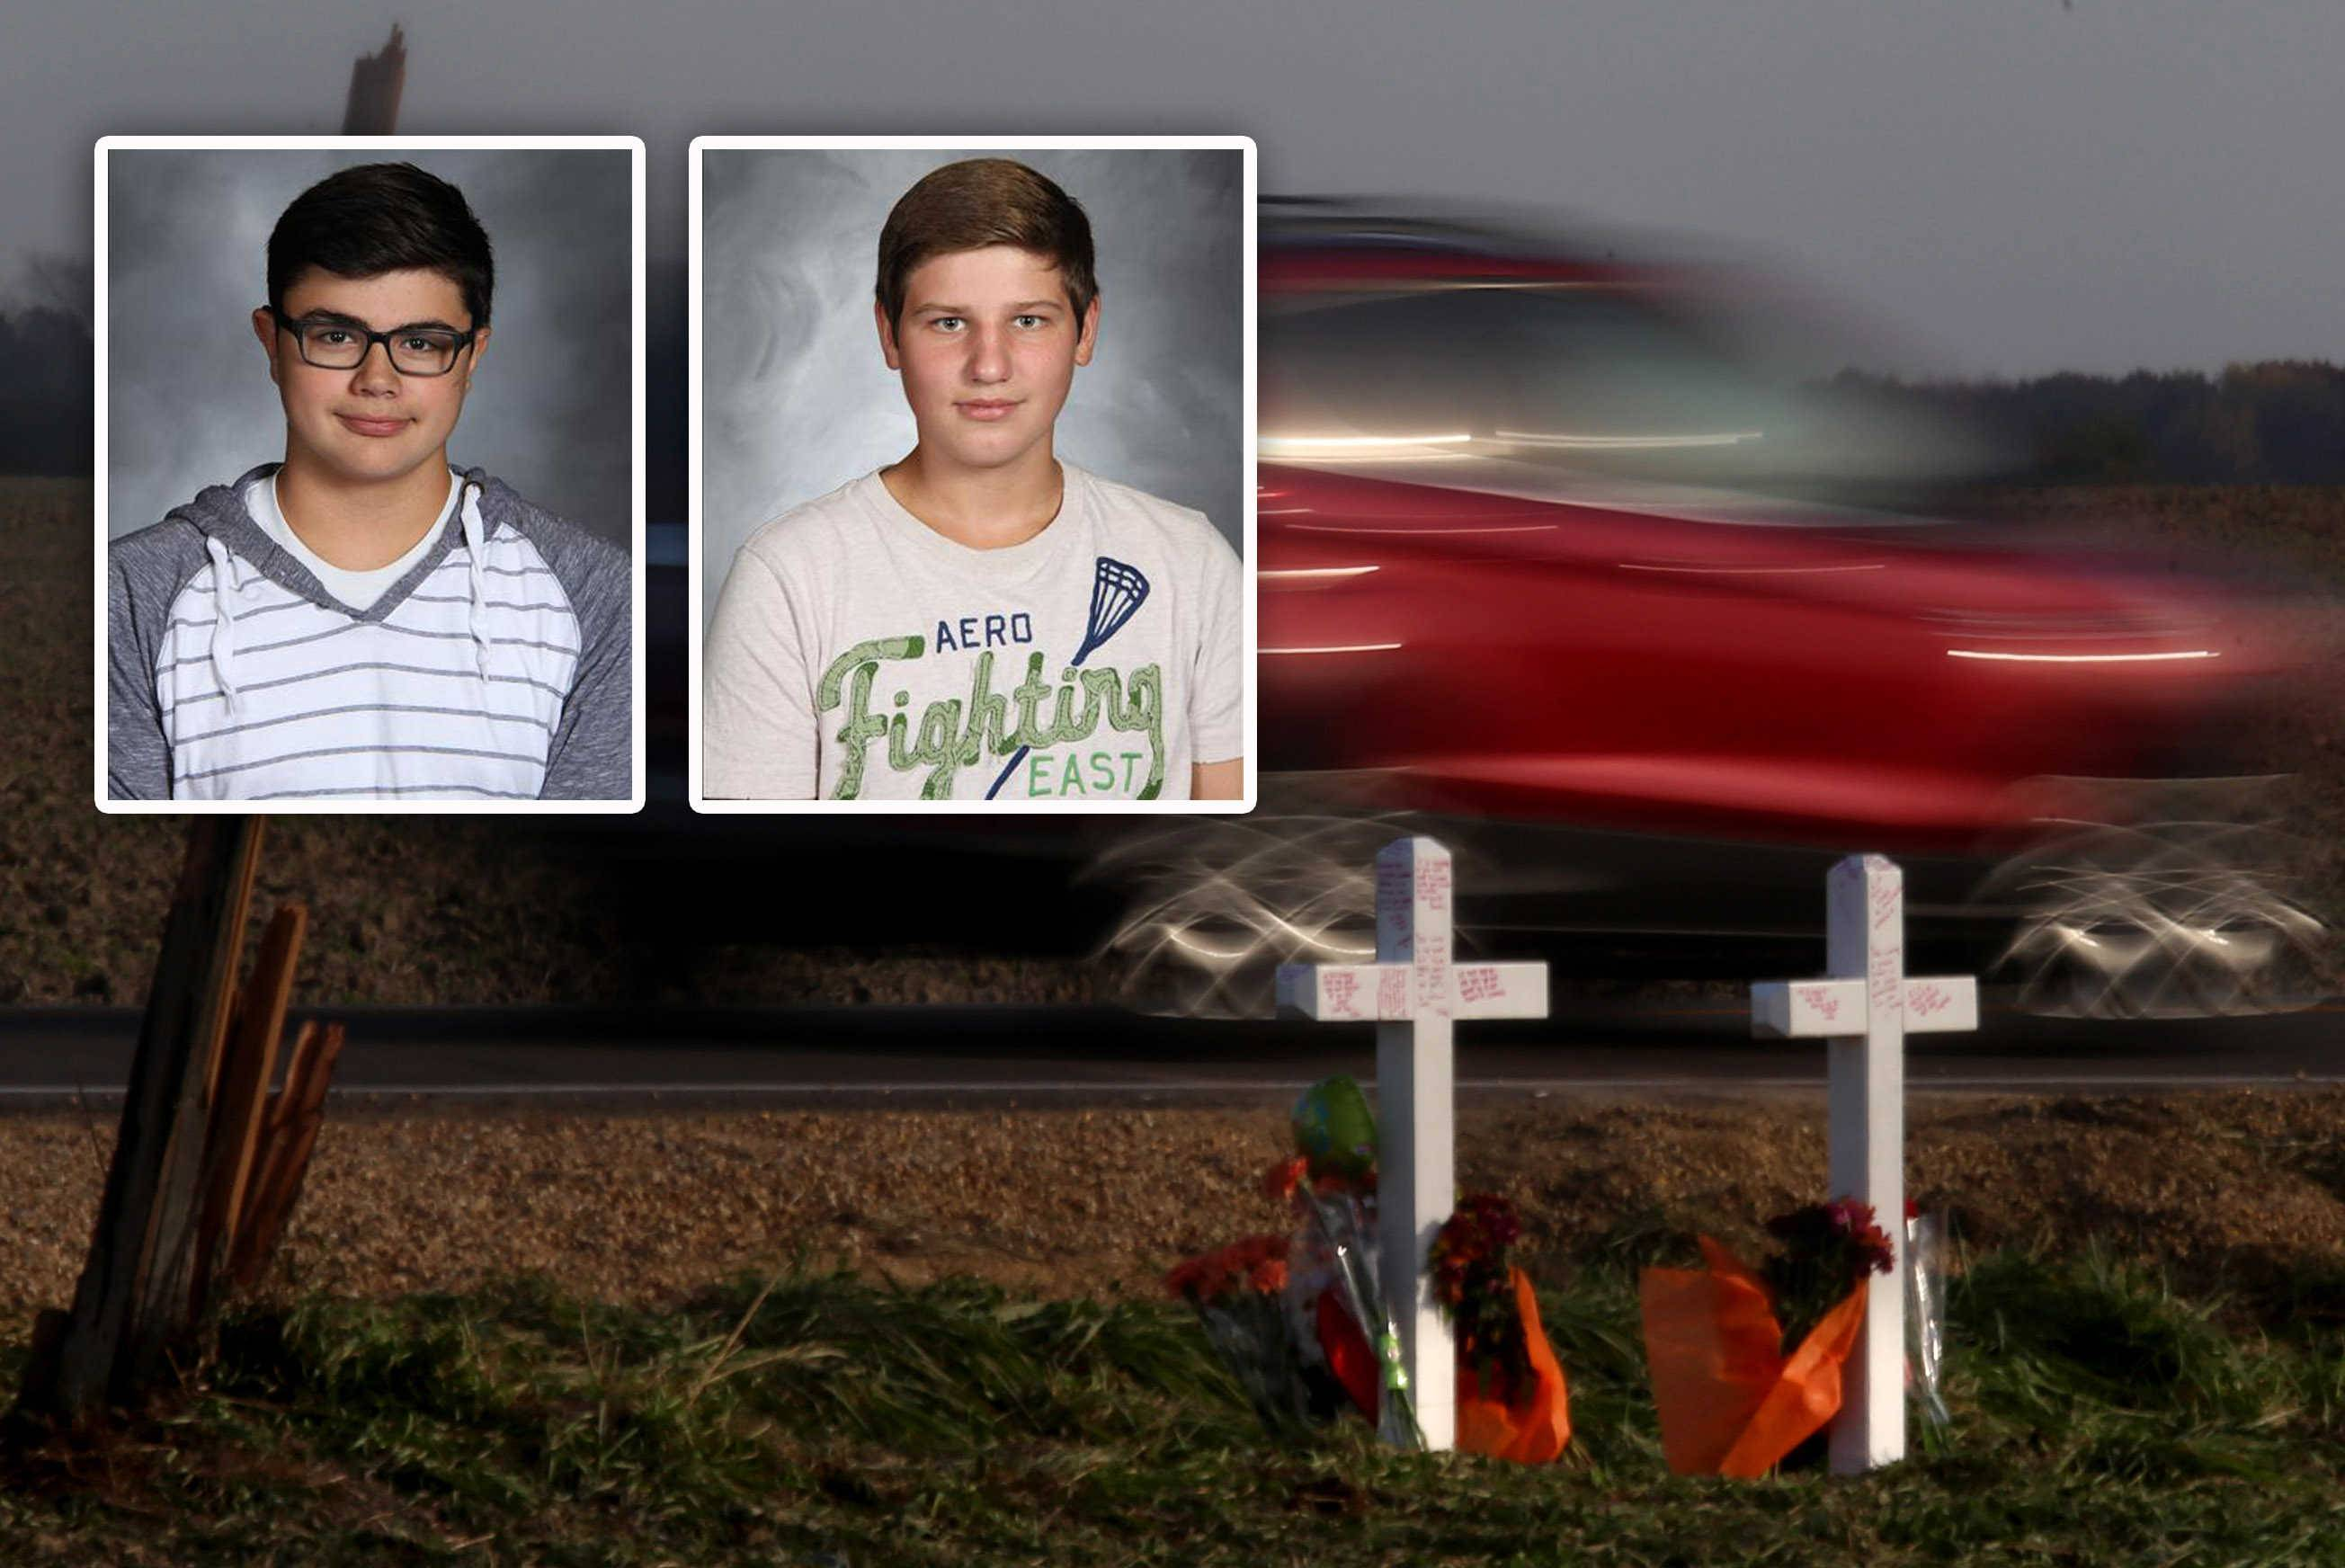 Crosses are seen Monday where two teen boys were pronounced dead at the scene of a crash, which occurred about 5 p.m. Saturday near Meredith and Beith roads northwest of Elburn. Killed were Arthur Stenger, left, a 16-year-old from Montgomery, and Elijah Vajgert, right, a 16-year-old from Maple Park. Both were juniors at Kaneland High.